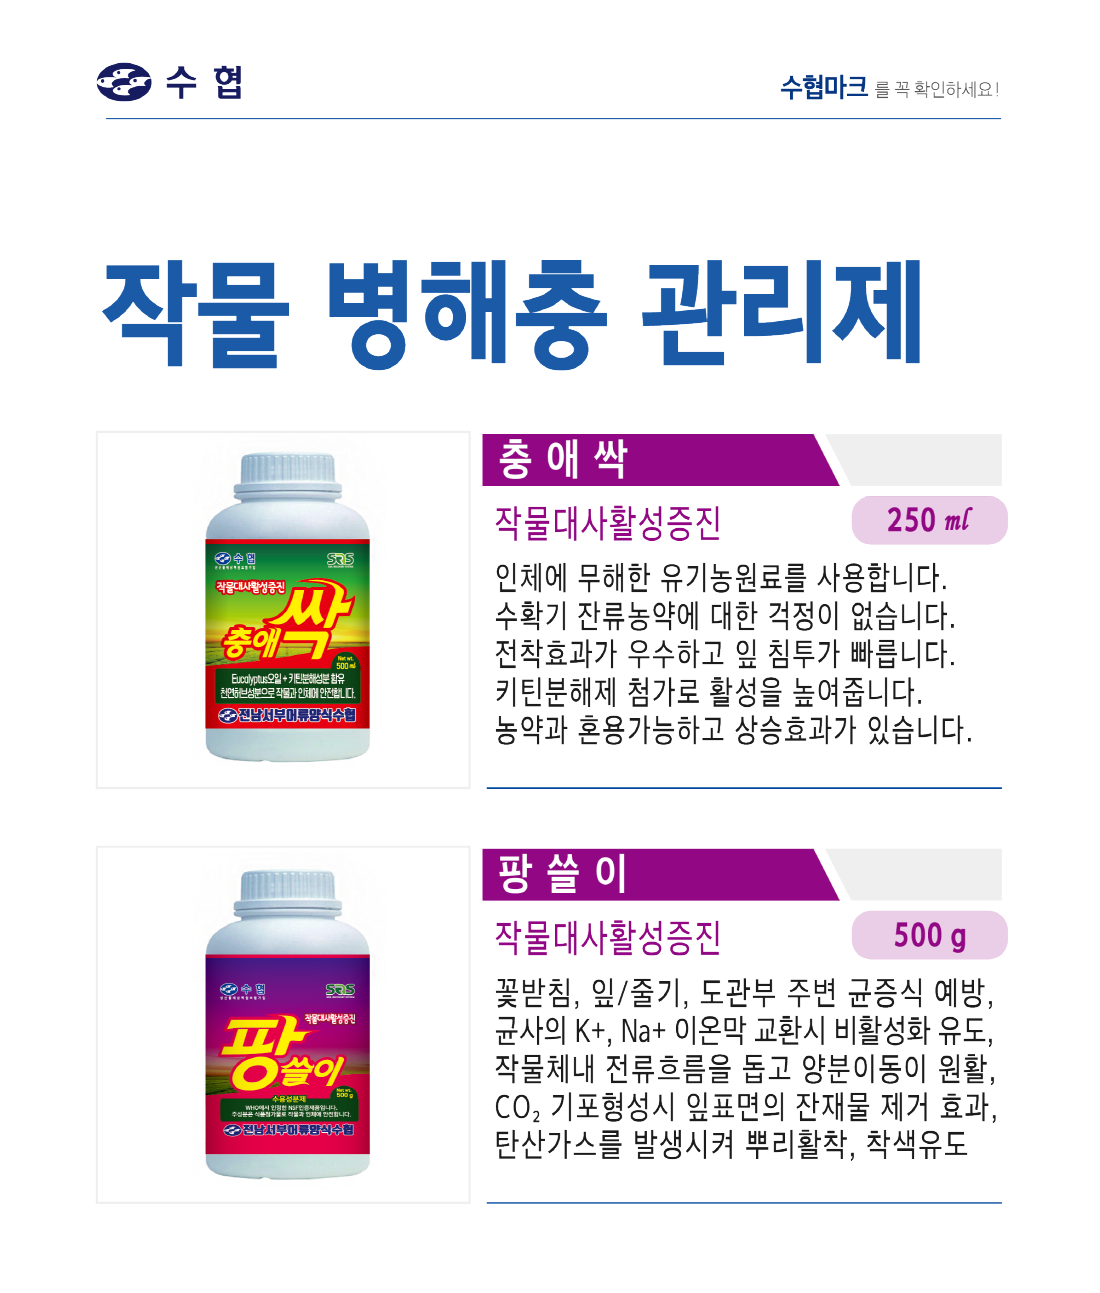 http://suhyup2019.handpr.kr/bs/se2/imgup/1589964492det2_s.png